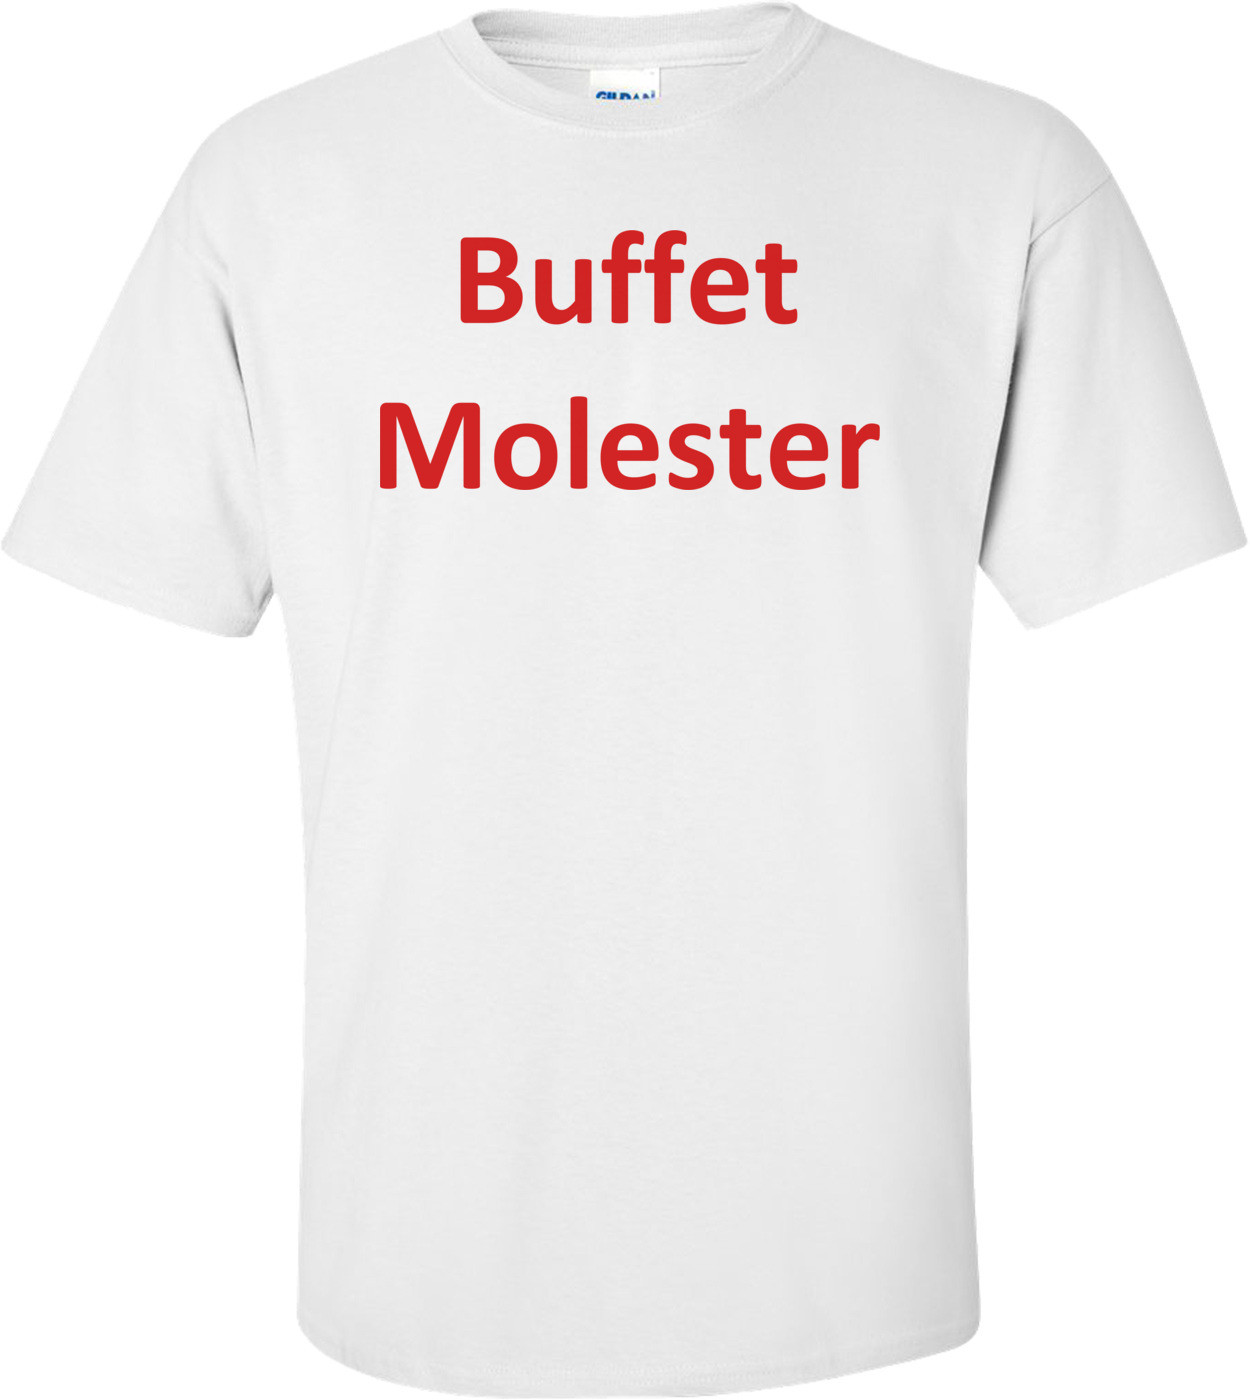 Buffet Molester Shirt